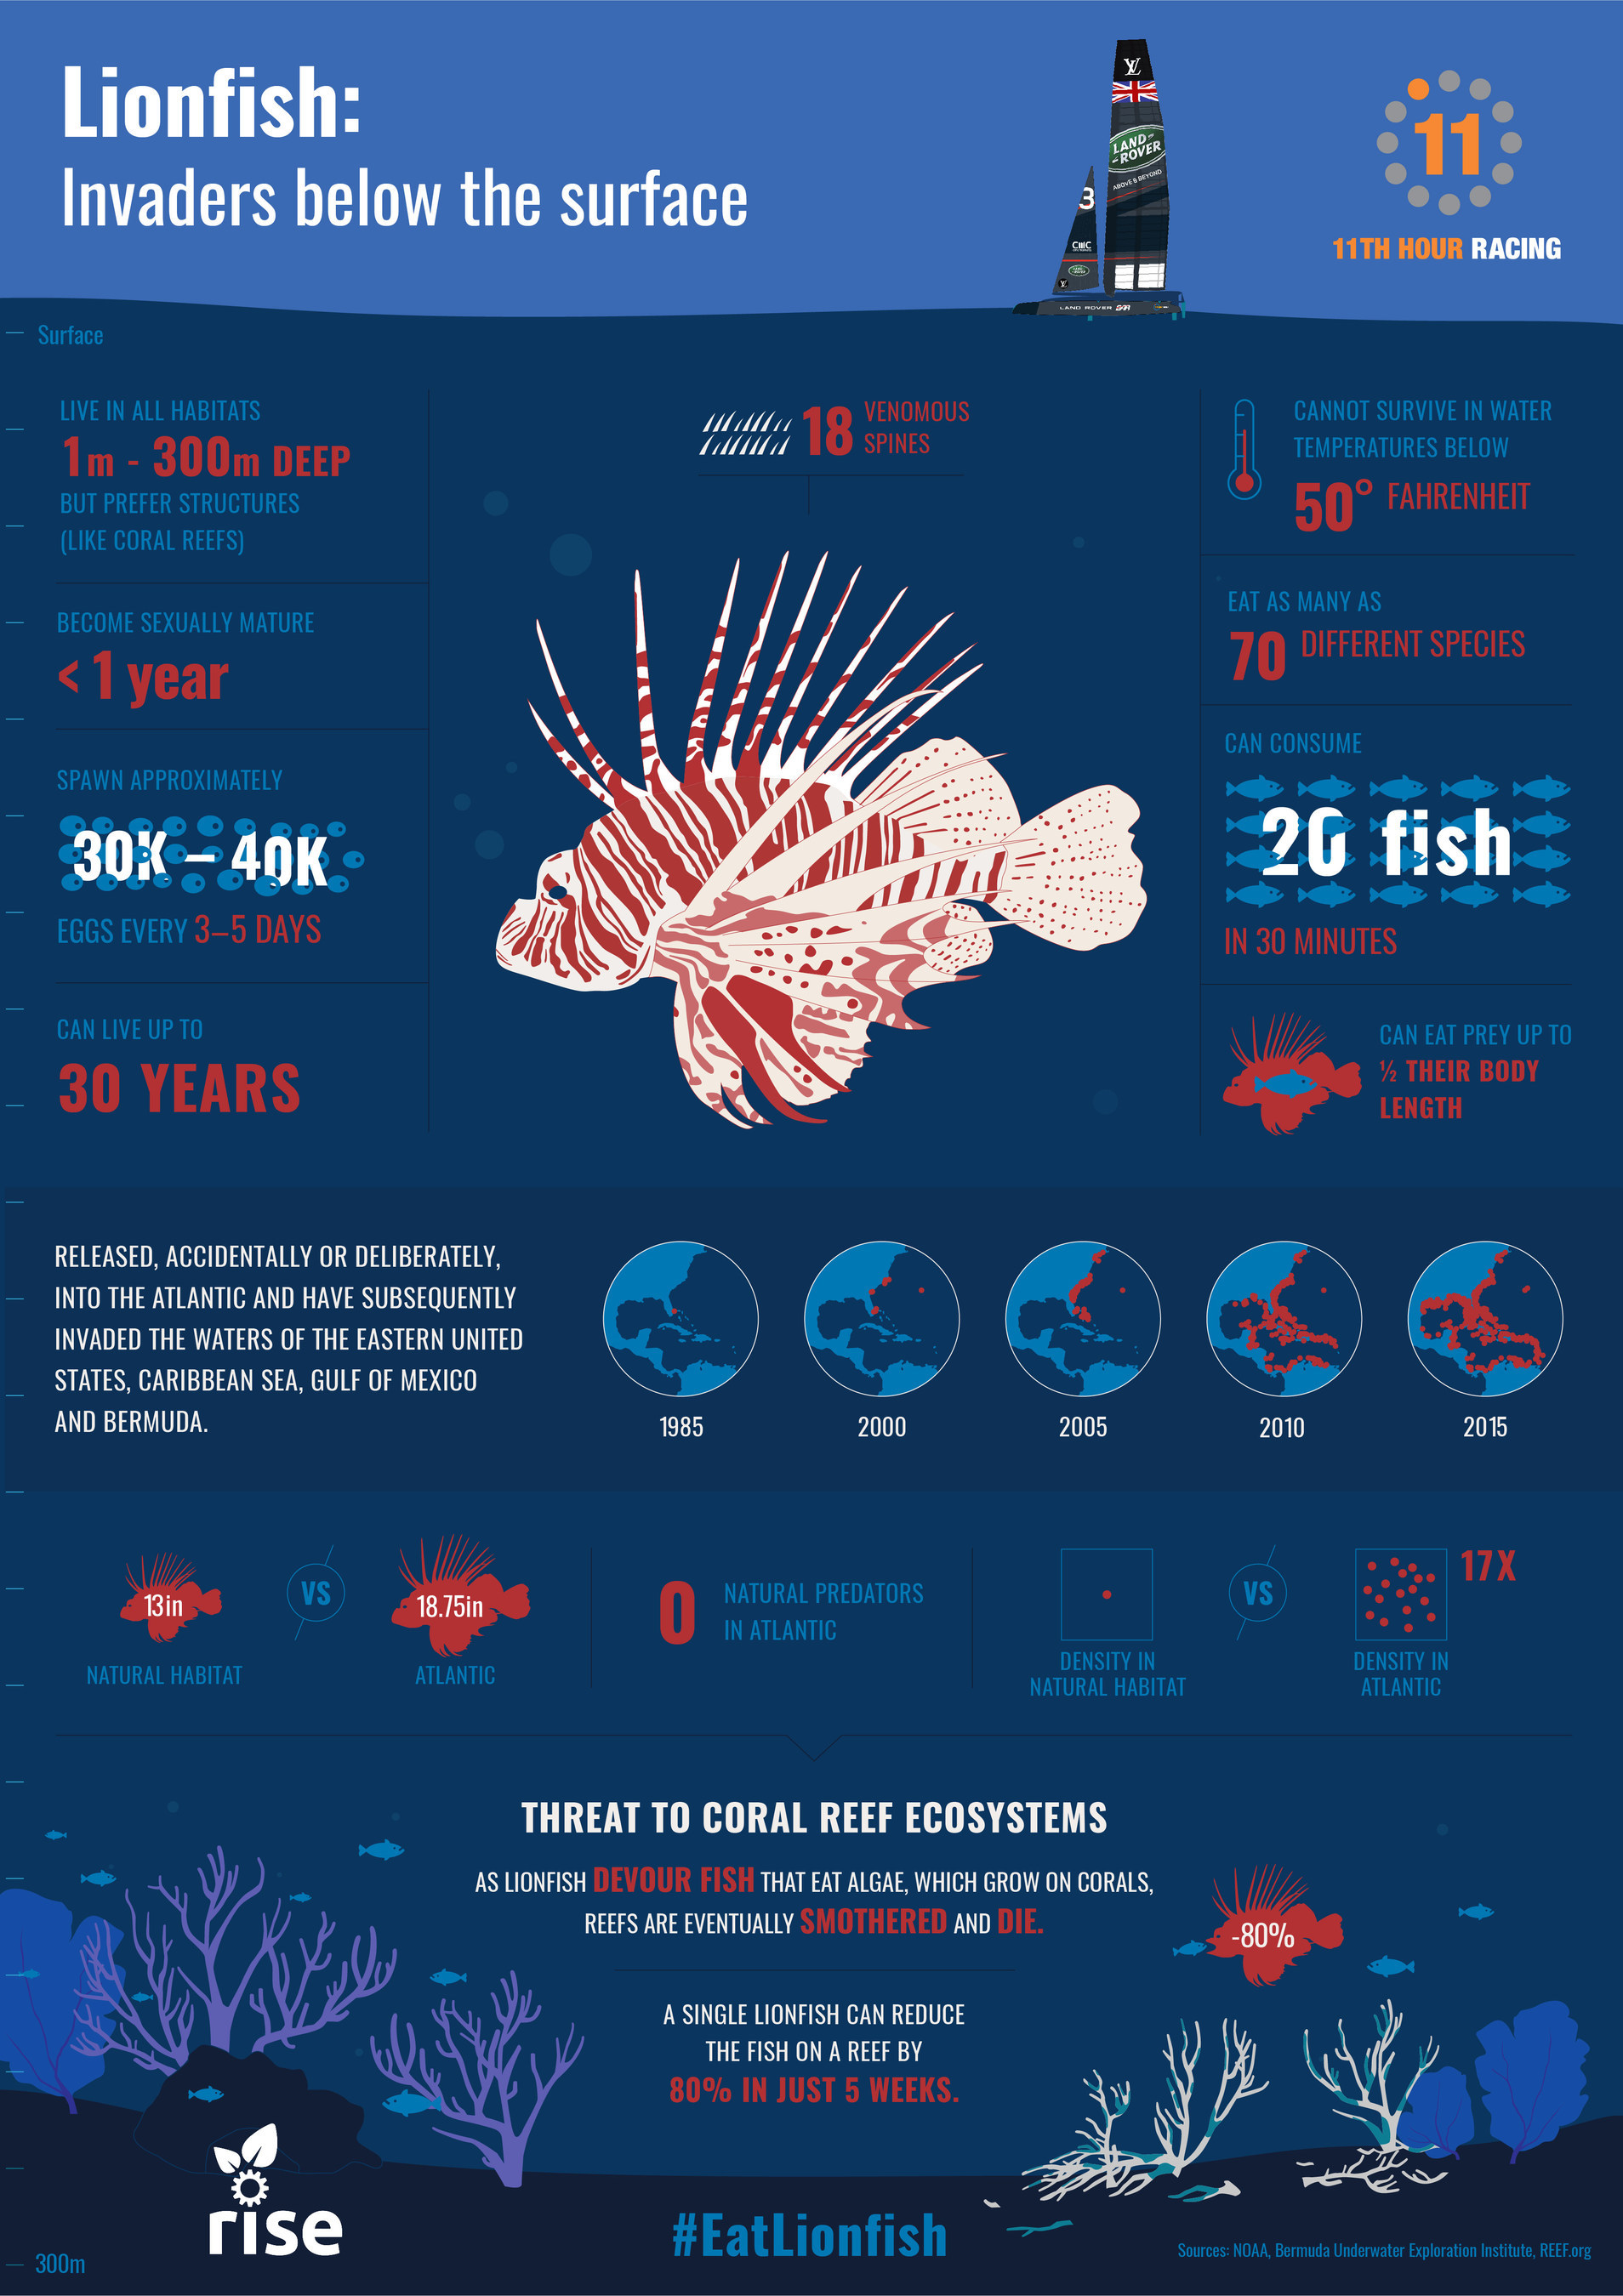 RISE: Robots In Service of the Environment Lionfish Facts and Infographic